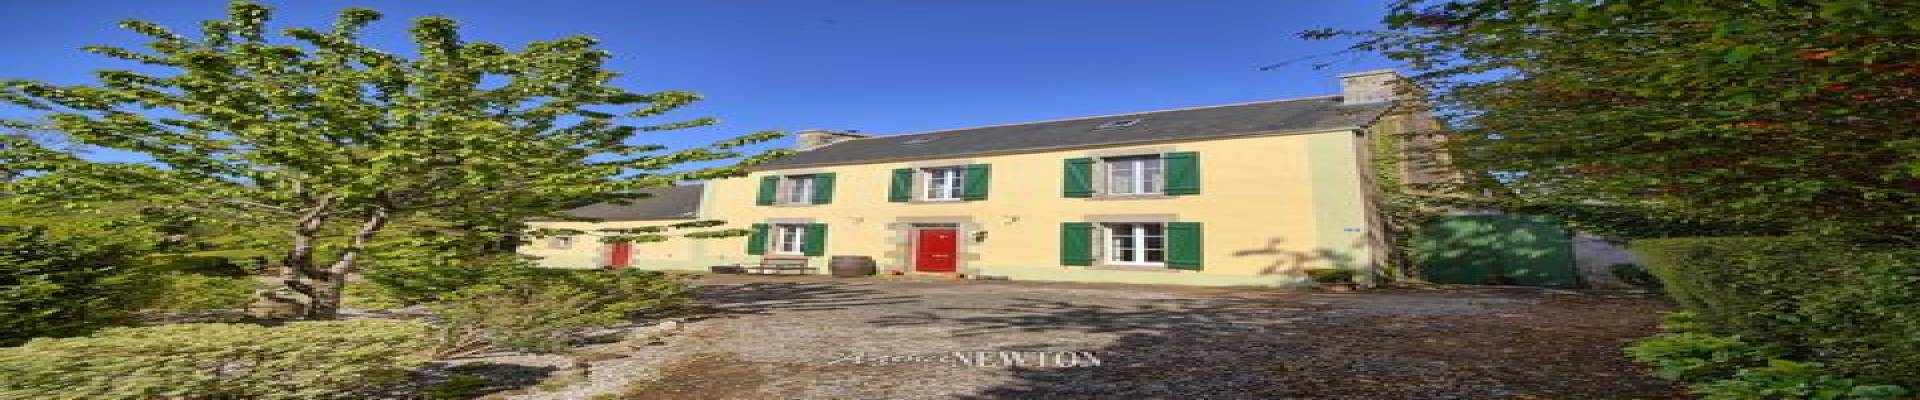 France Bretagne Pontivy 56300, 4 Bedrooms Bedrooms, ,Villa,For sale,7400